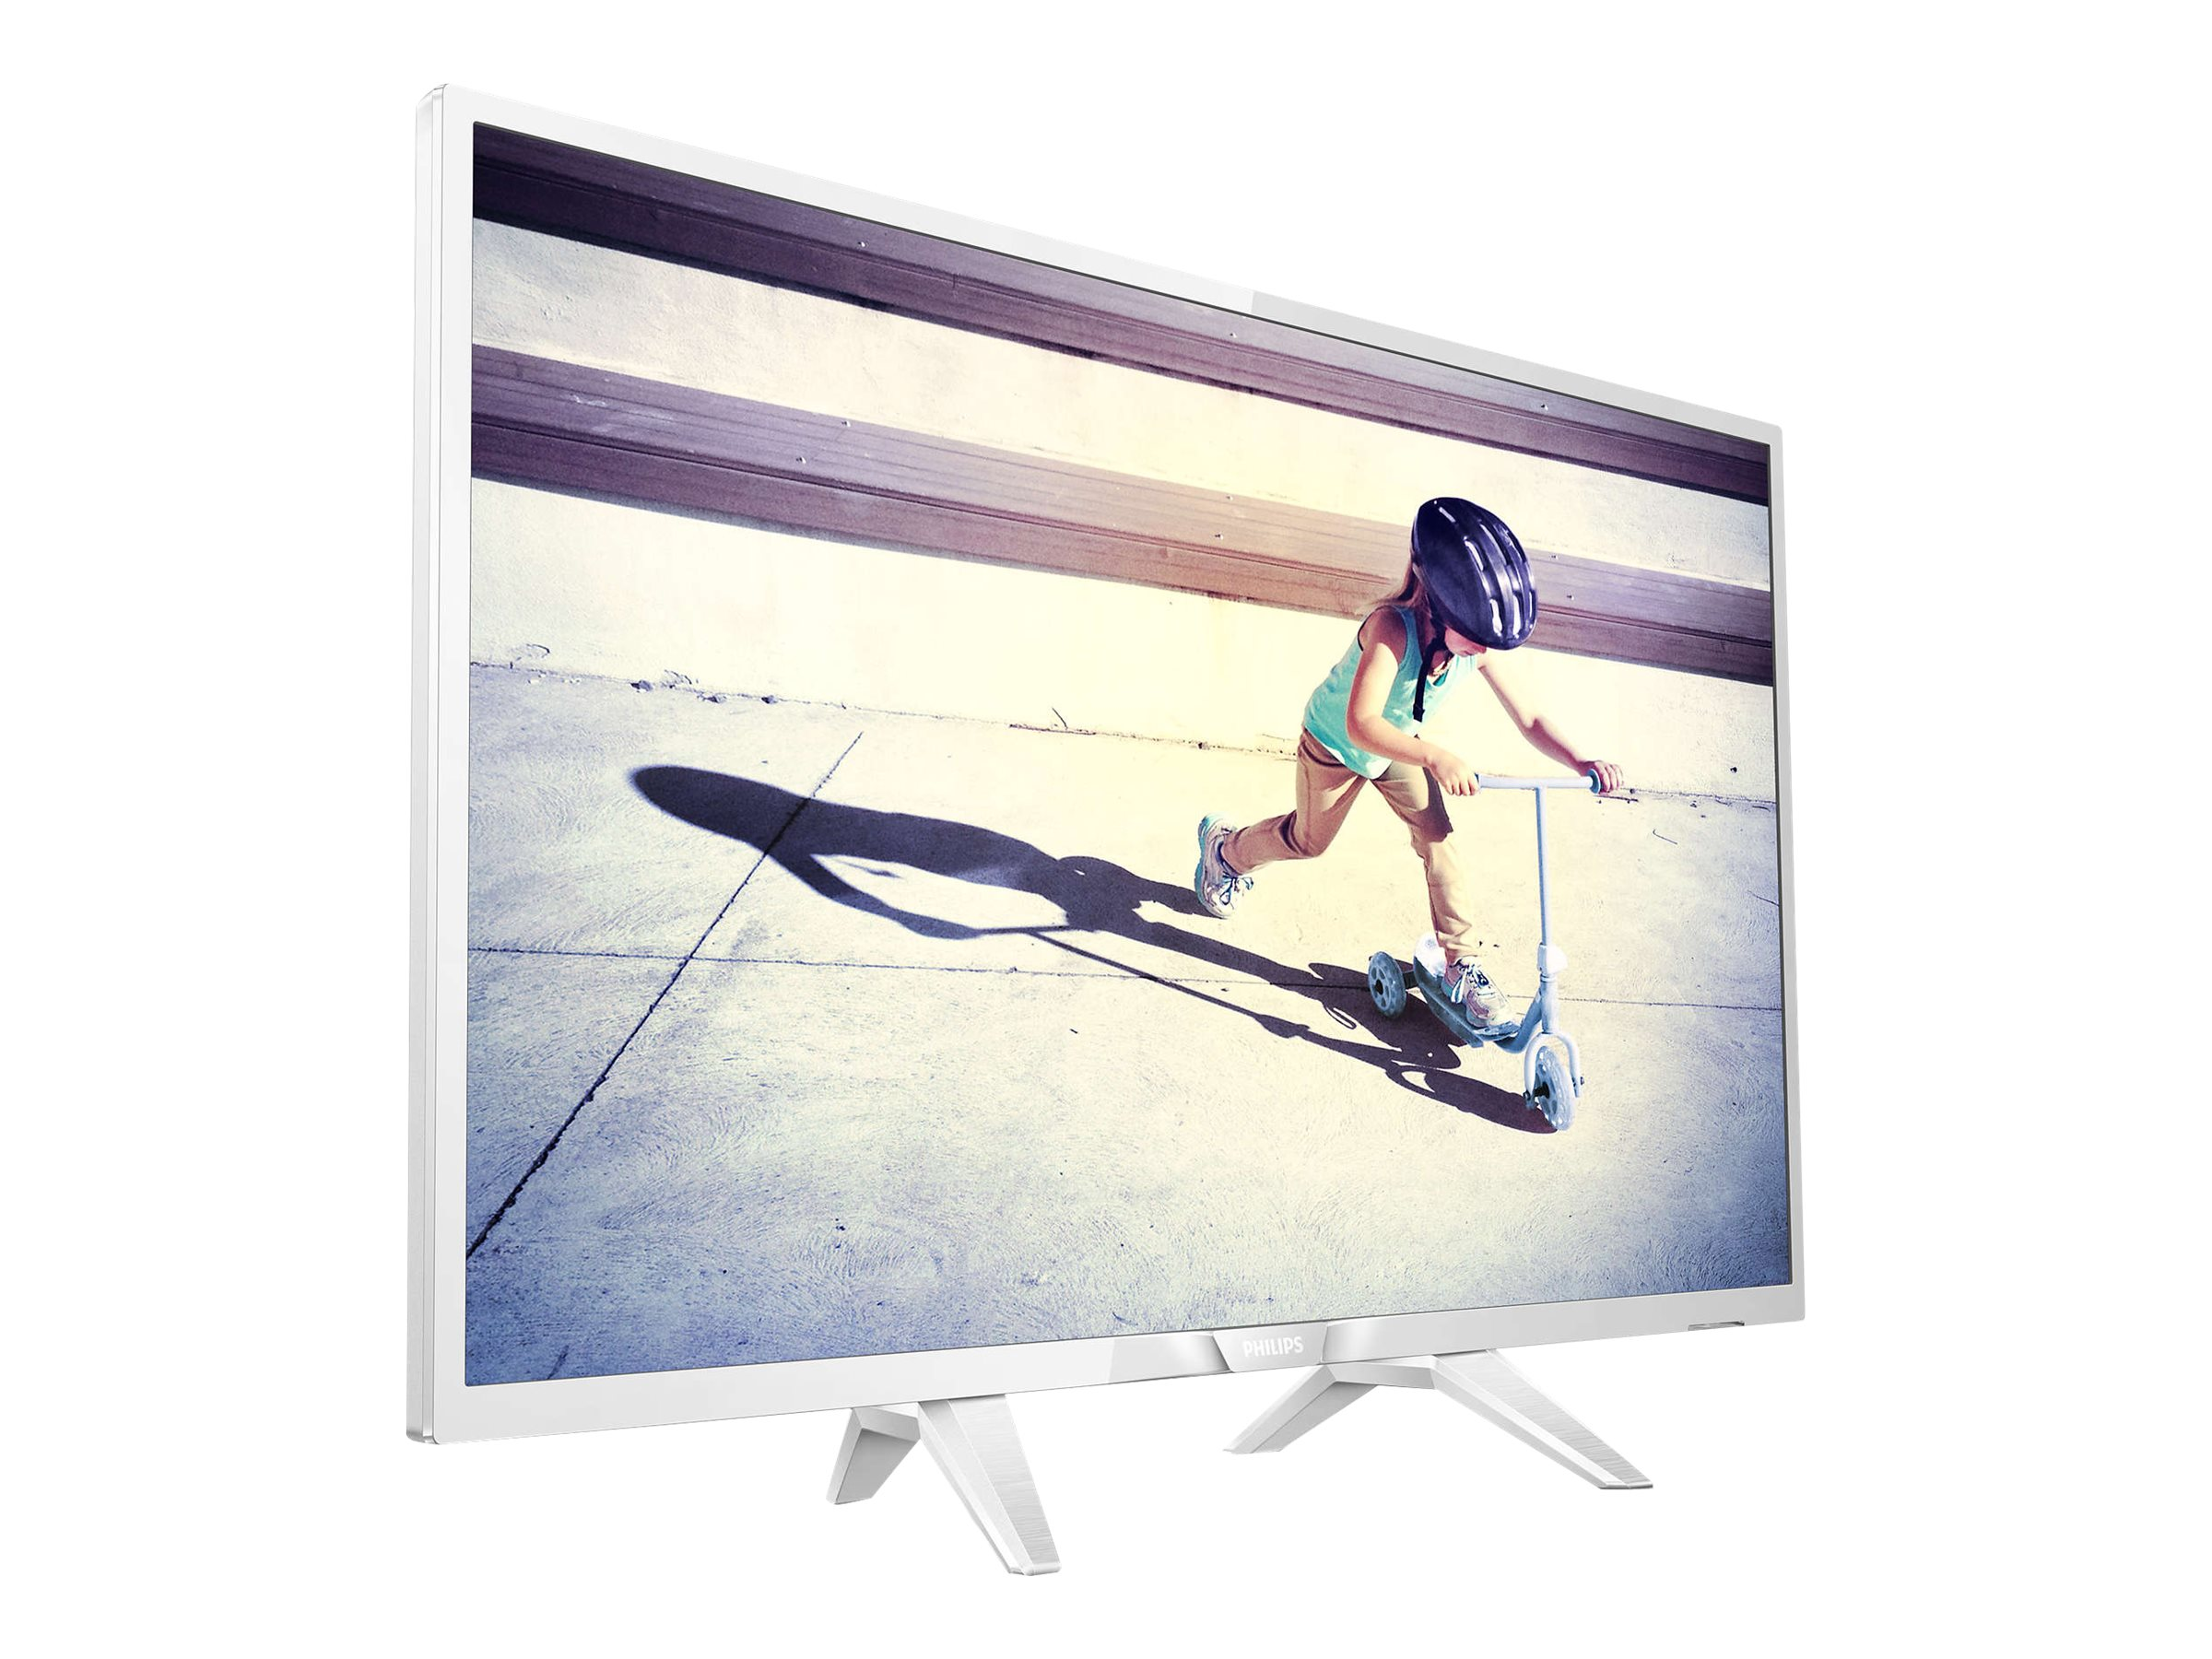 PHILIPS 32PHT4032 32 CLASE 4000 SERIES TV LED 720P